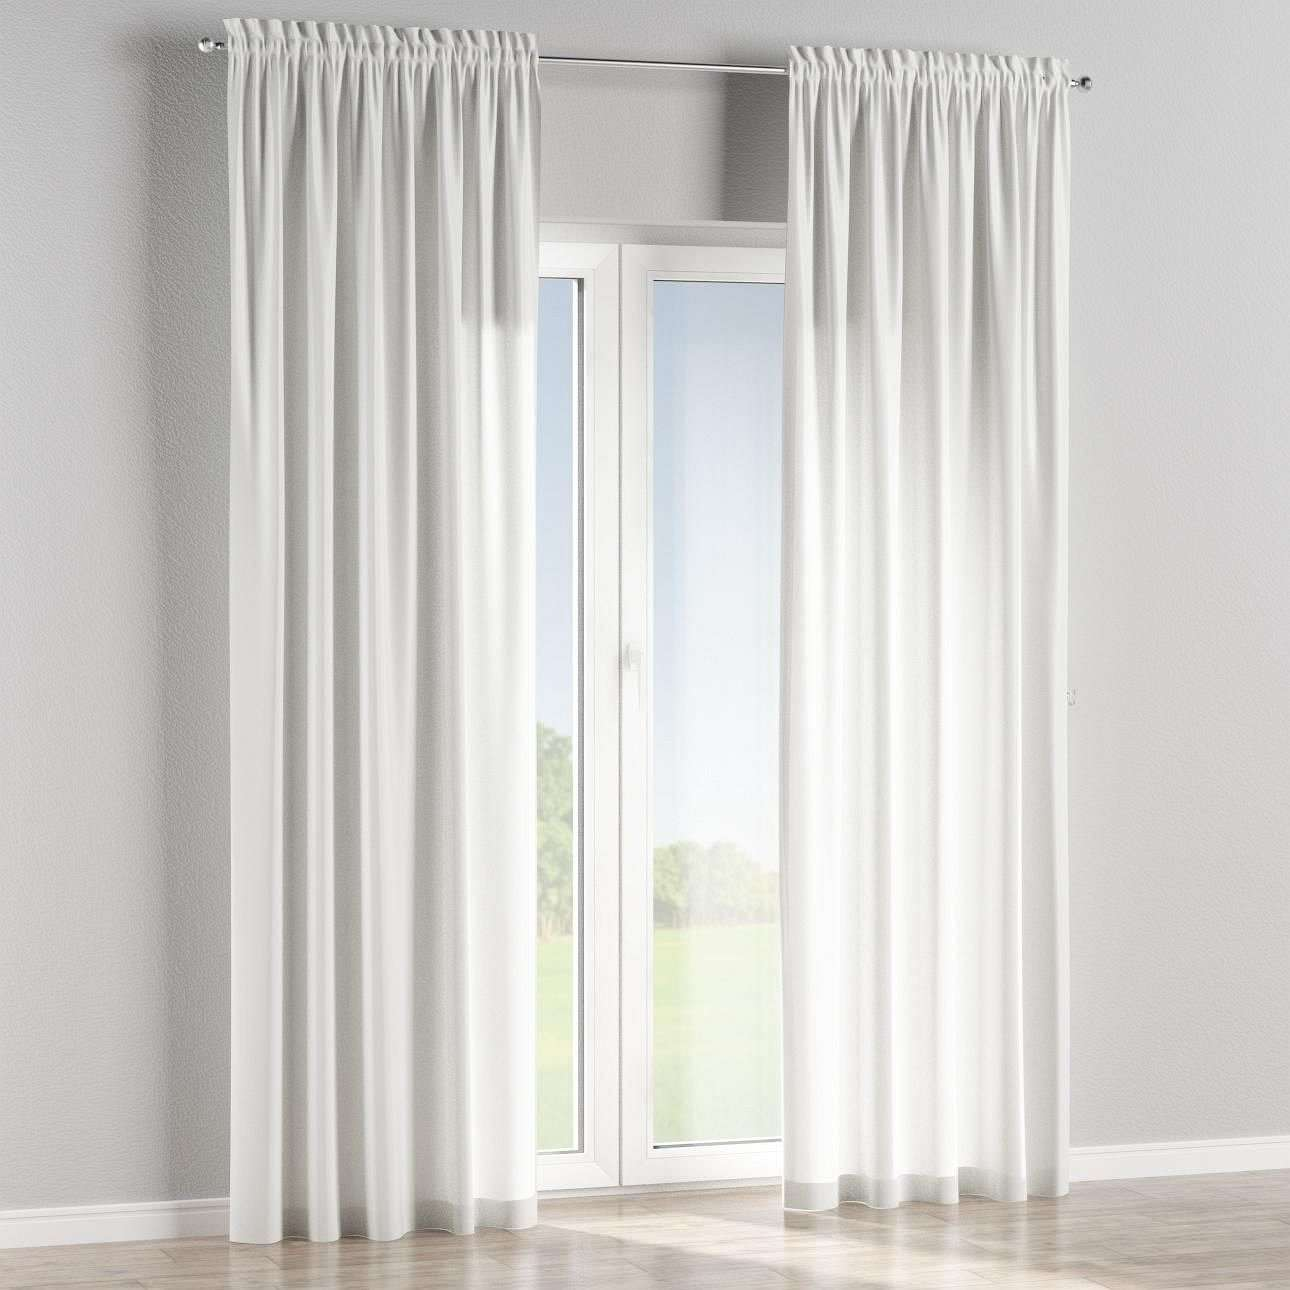 Slot and frill curtains in collection Cardiff, fabric: 136-28